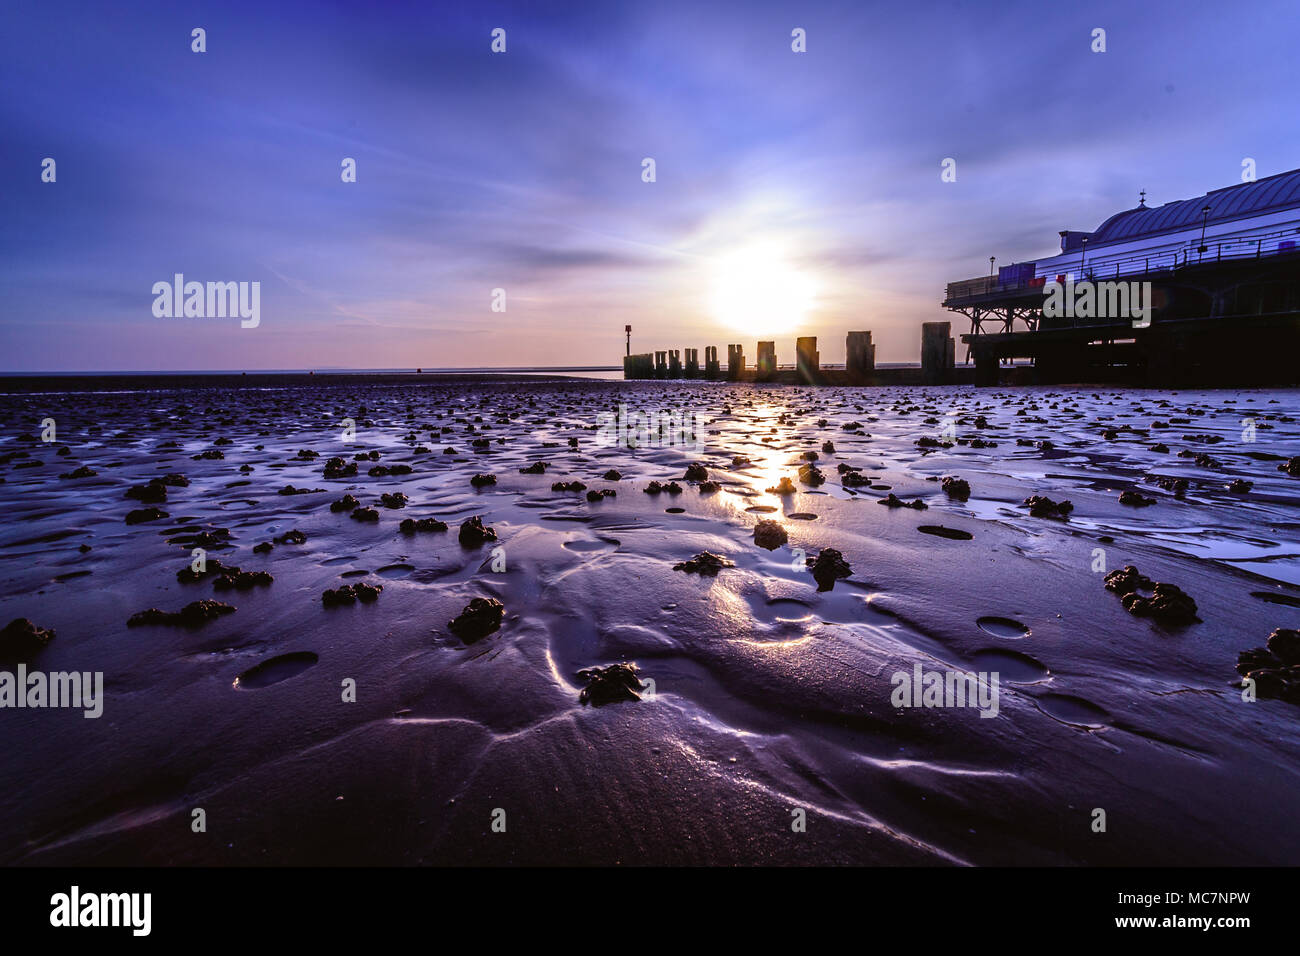 Cleethorpes Pier at Sunrise - Stock Image